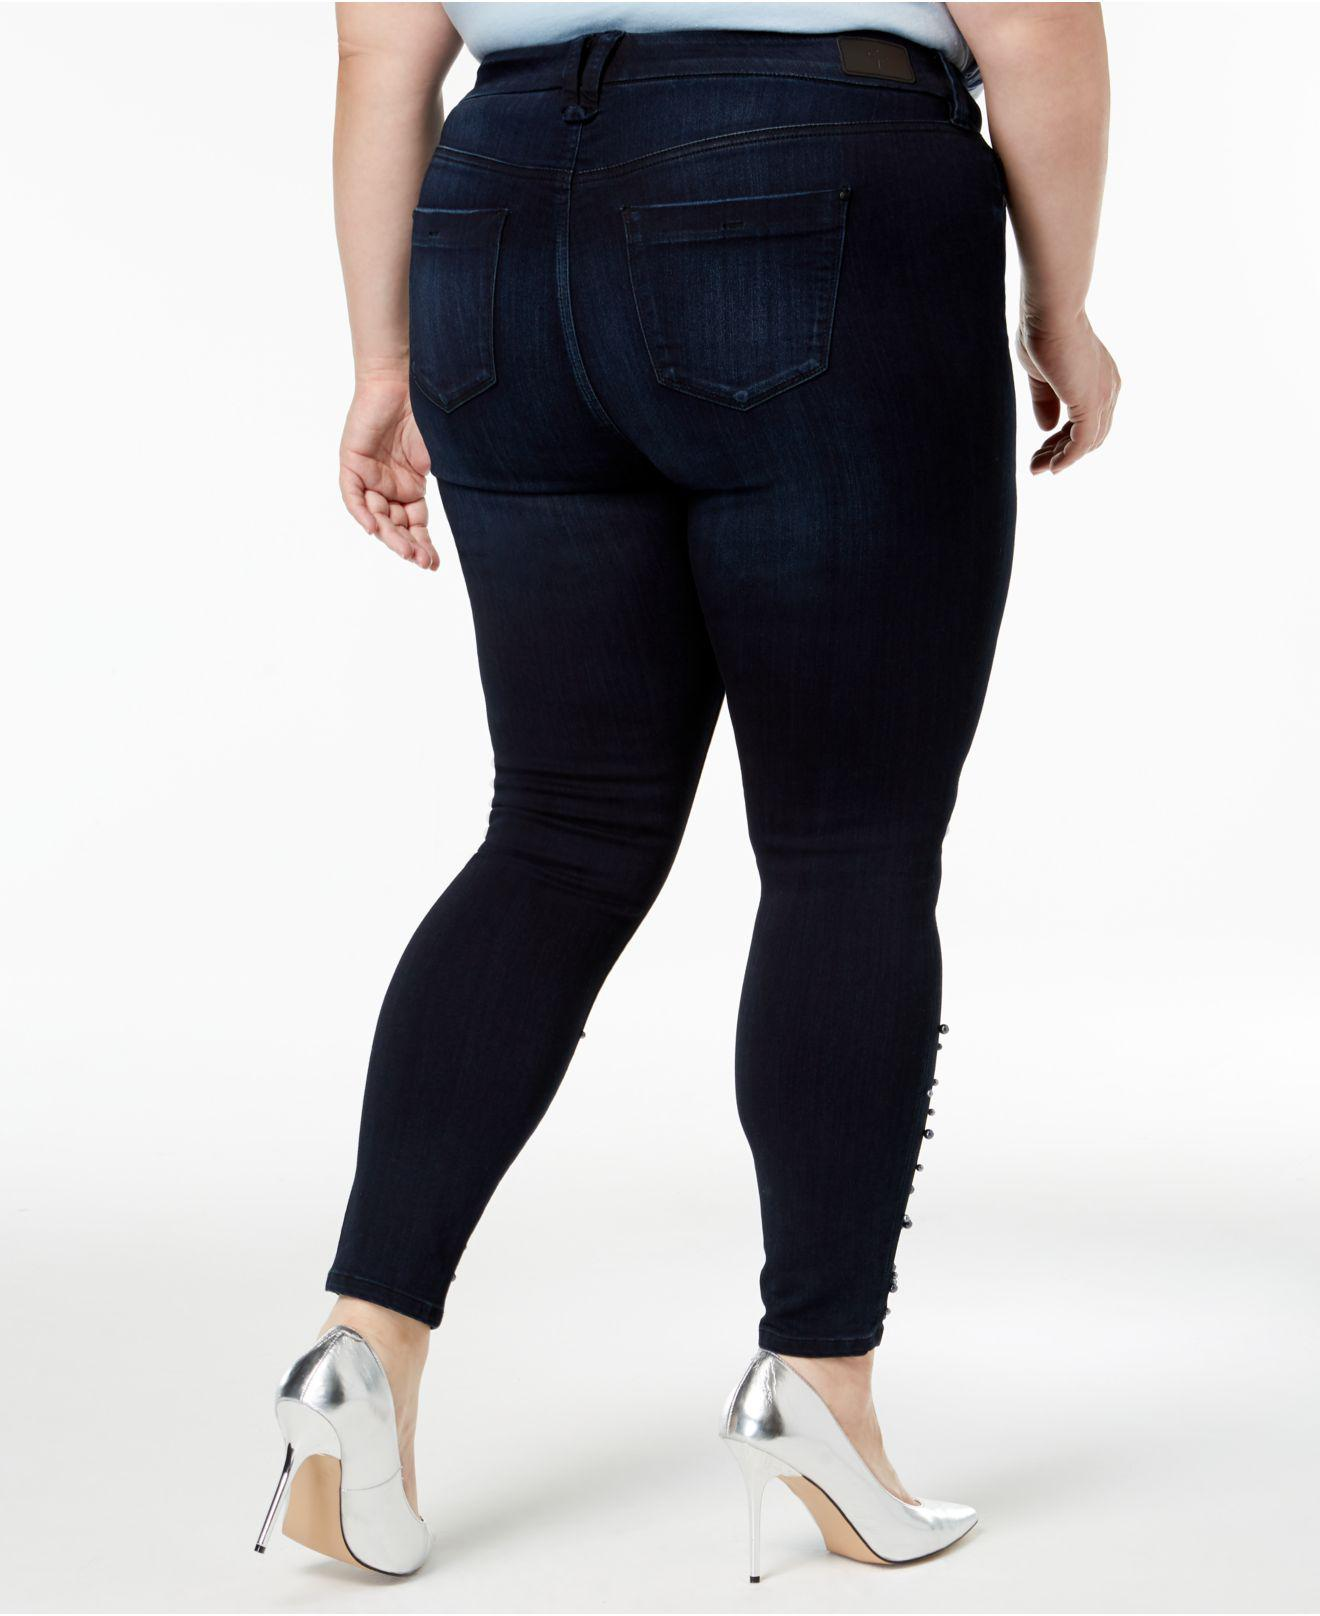 8f7903181ad5c Lyst - Celebrity Pink Trendy Plus Size Embellished Skinny Jeans in Blue